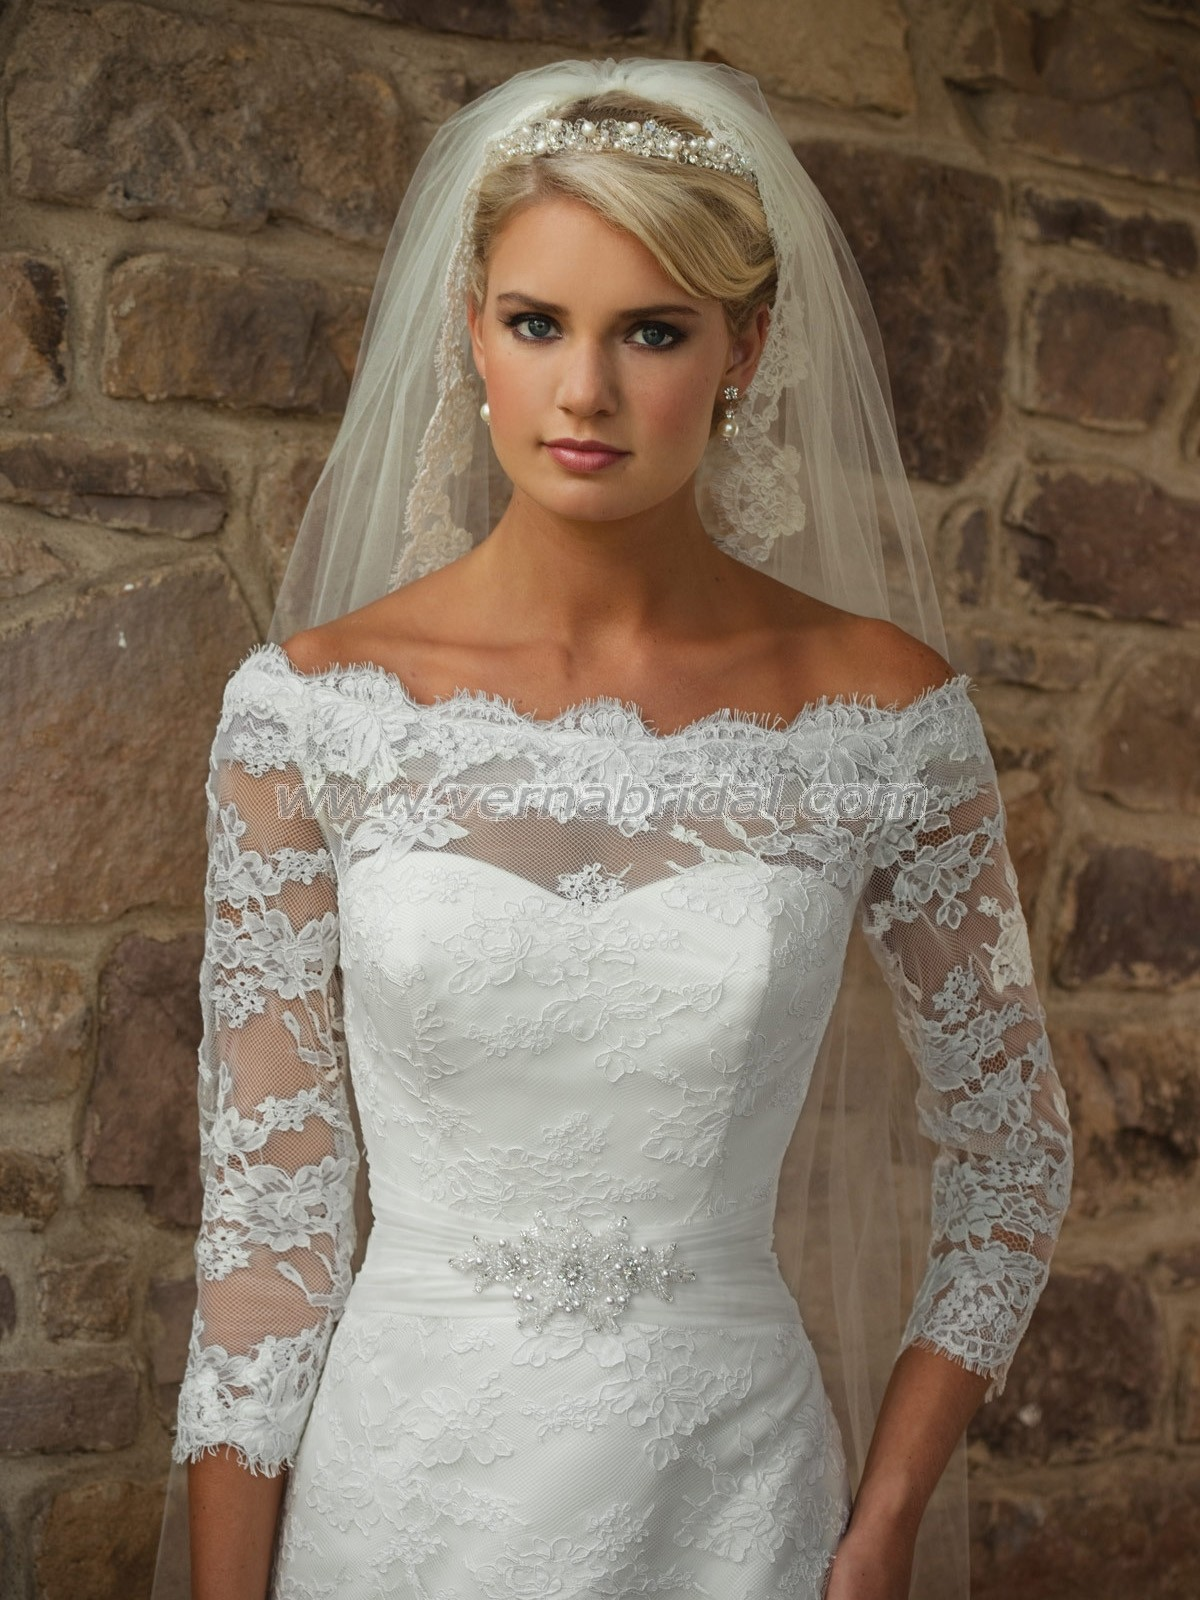 Wedding Dress Images Lace : Wedding dresses with lace sleeves sang maestro